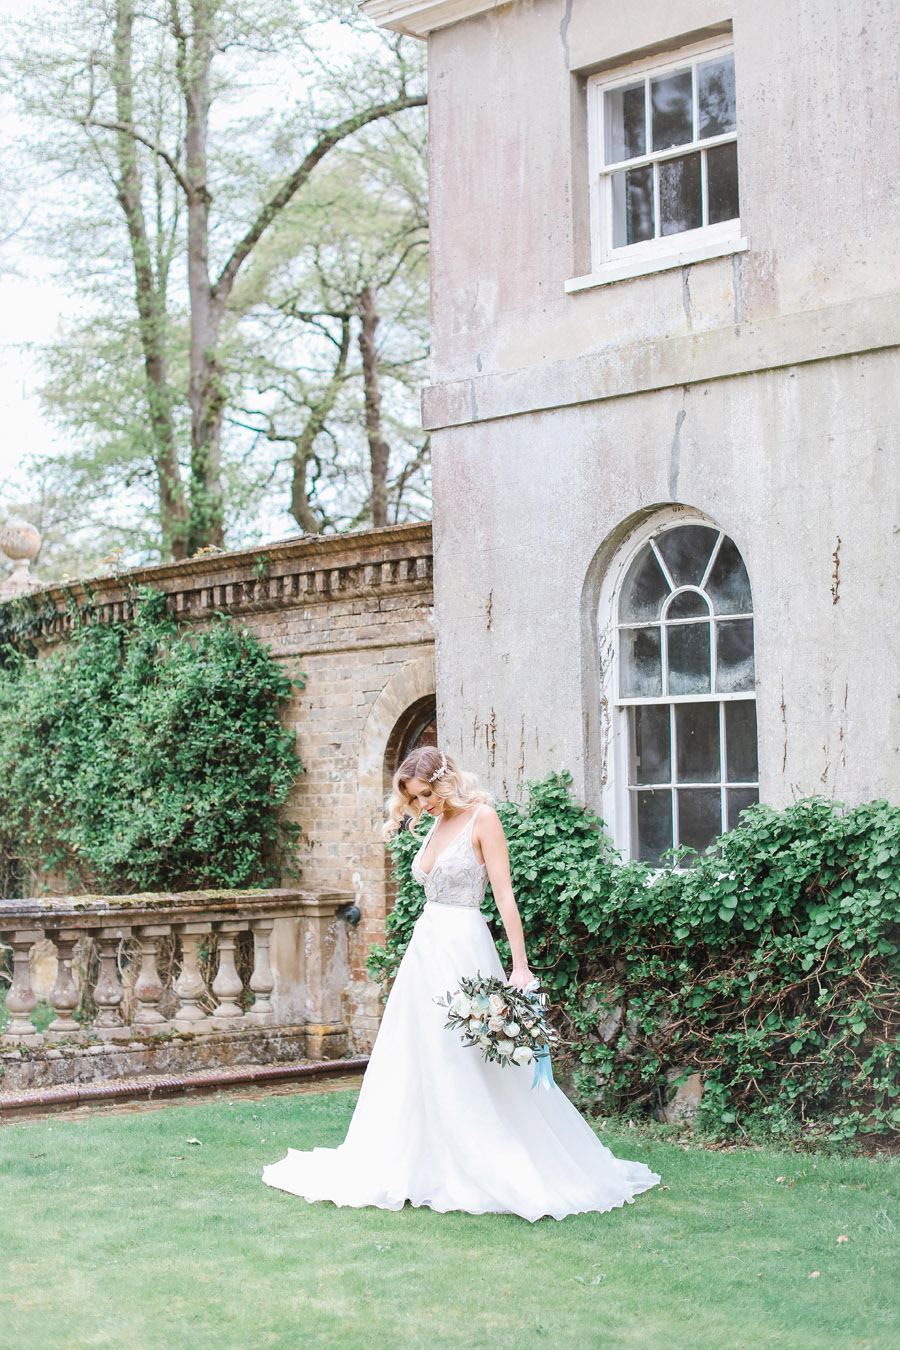 Romantic wedding ideas from Hale Park, photo by Charlotte Wise Photography (19)